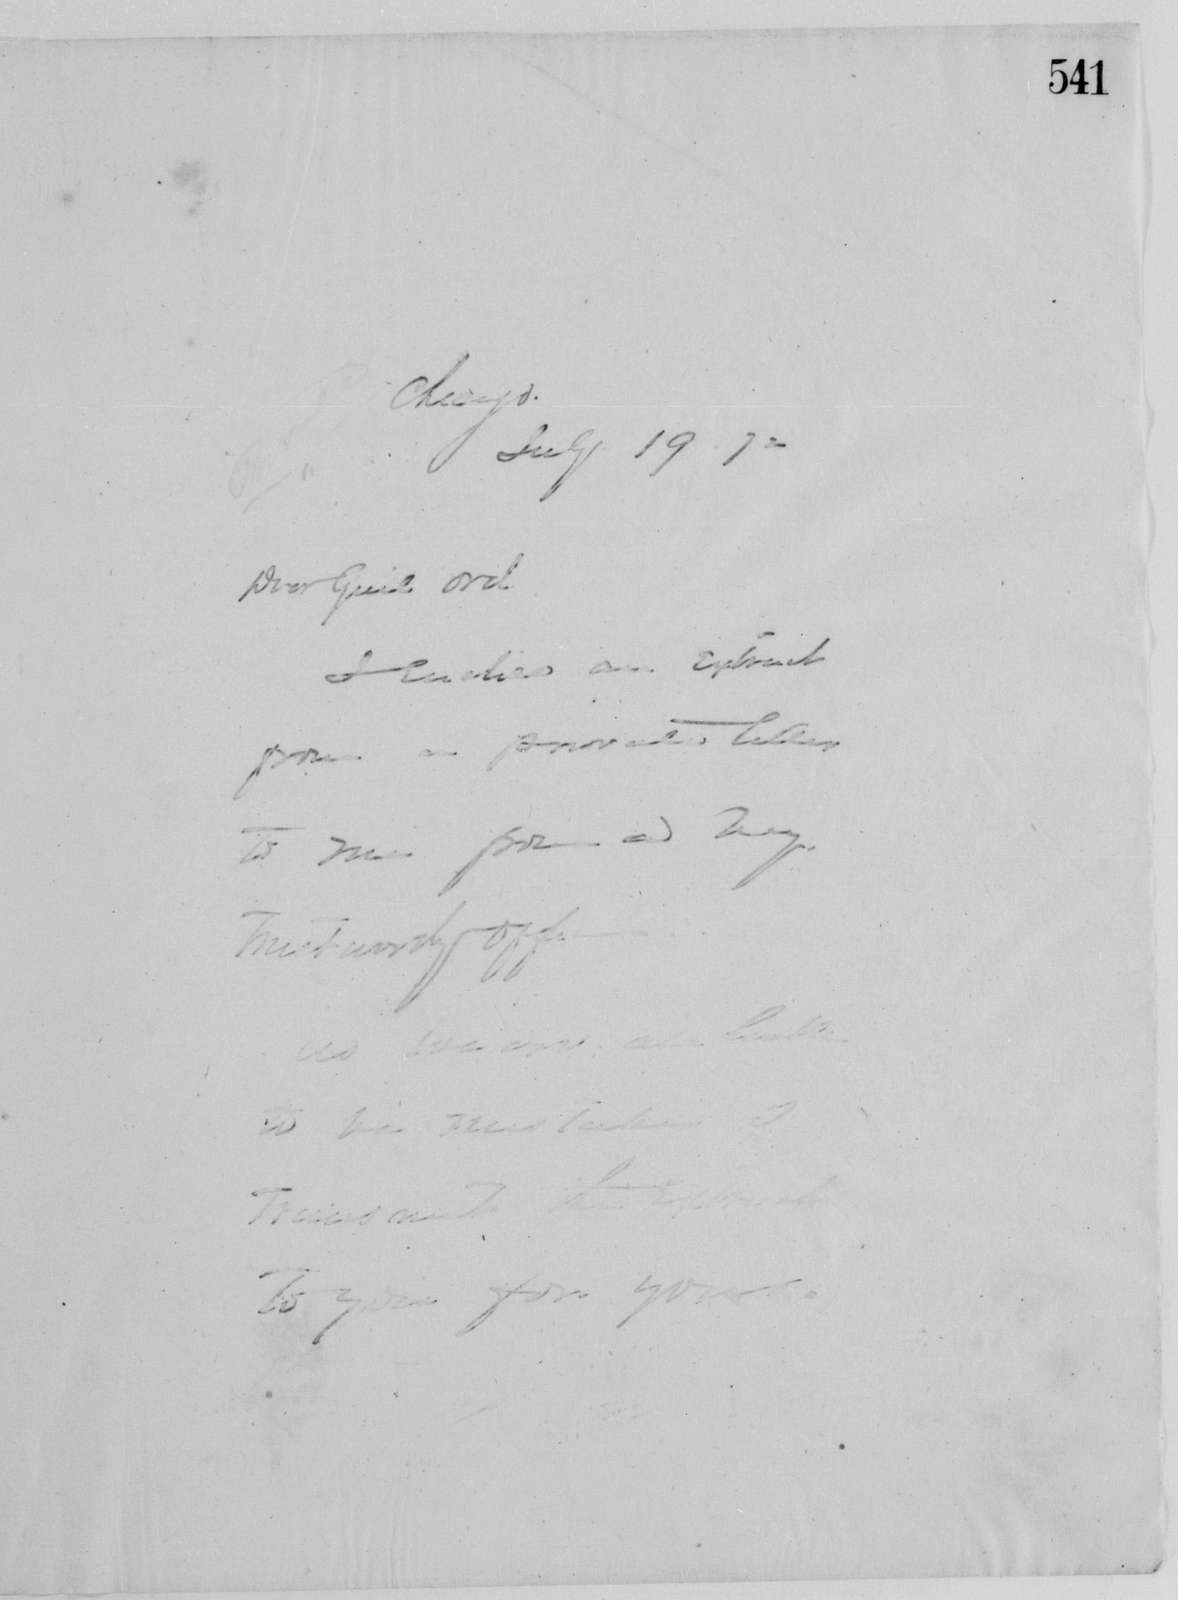 Philip Henry Sheridan Papers: Letterbooks, 1871-1888; General correspondence; 1871, Oct. 21-1872, Dec. 31 (includes correspondence dated 1874 and 1876)